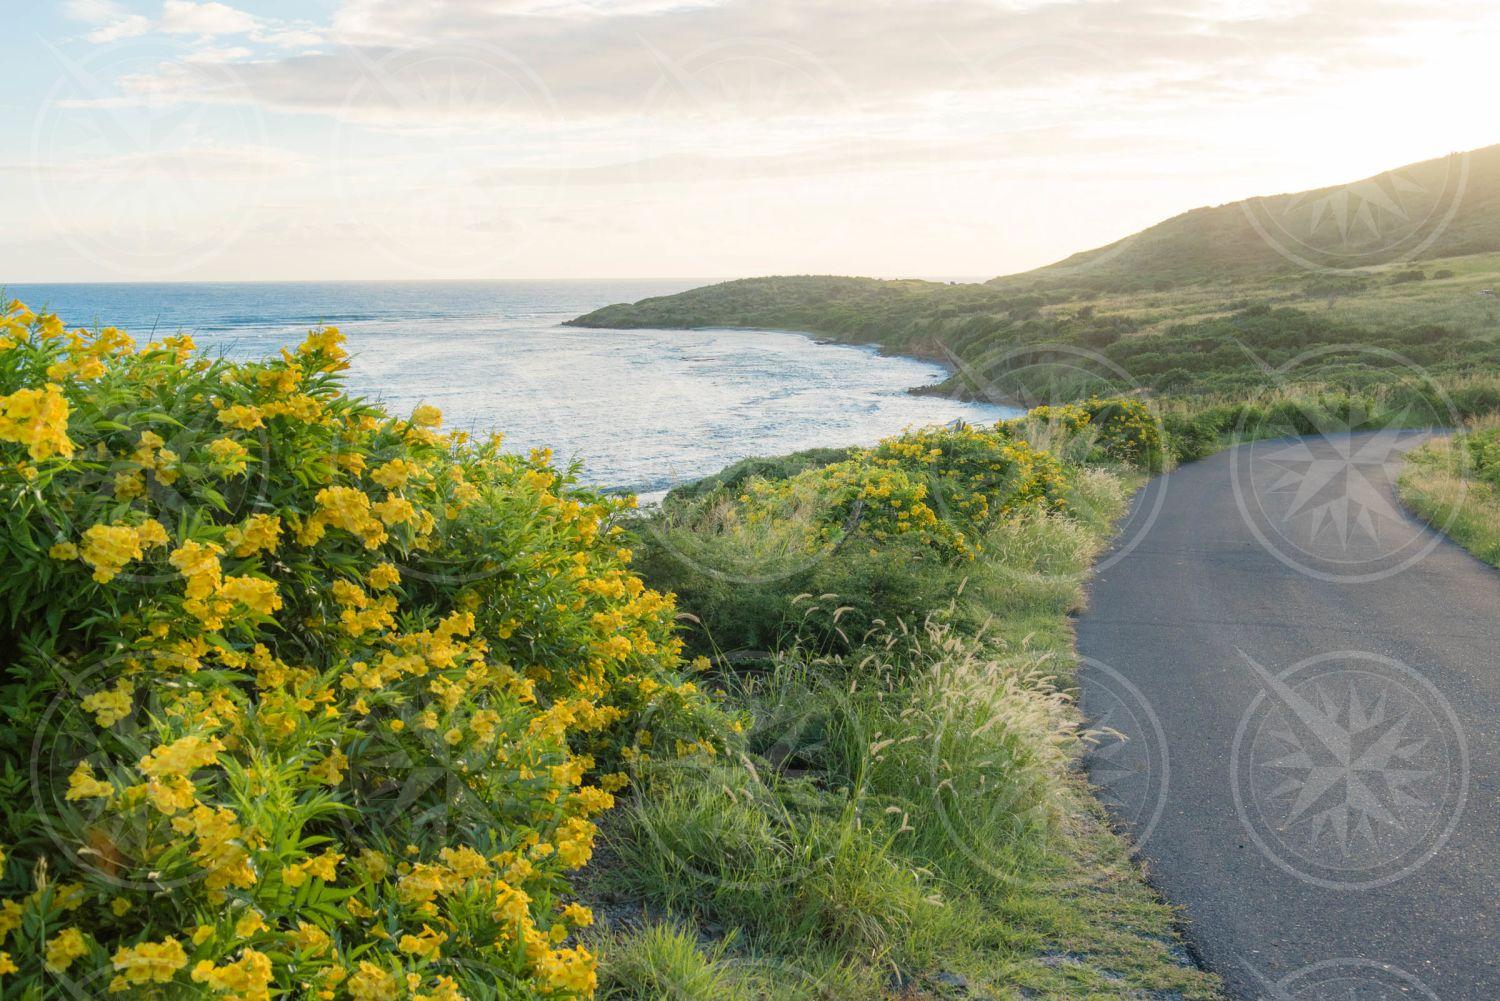 Road to Point Udall, St. Croix